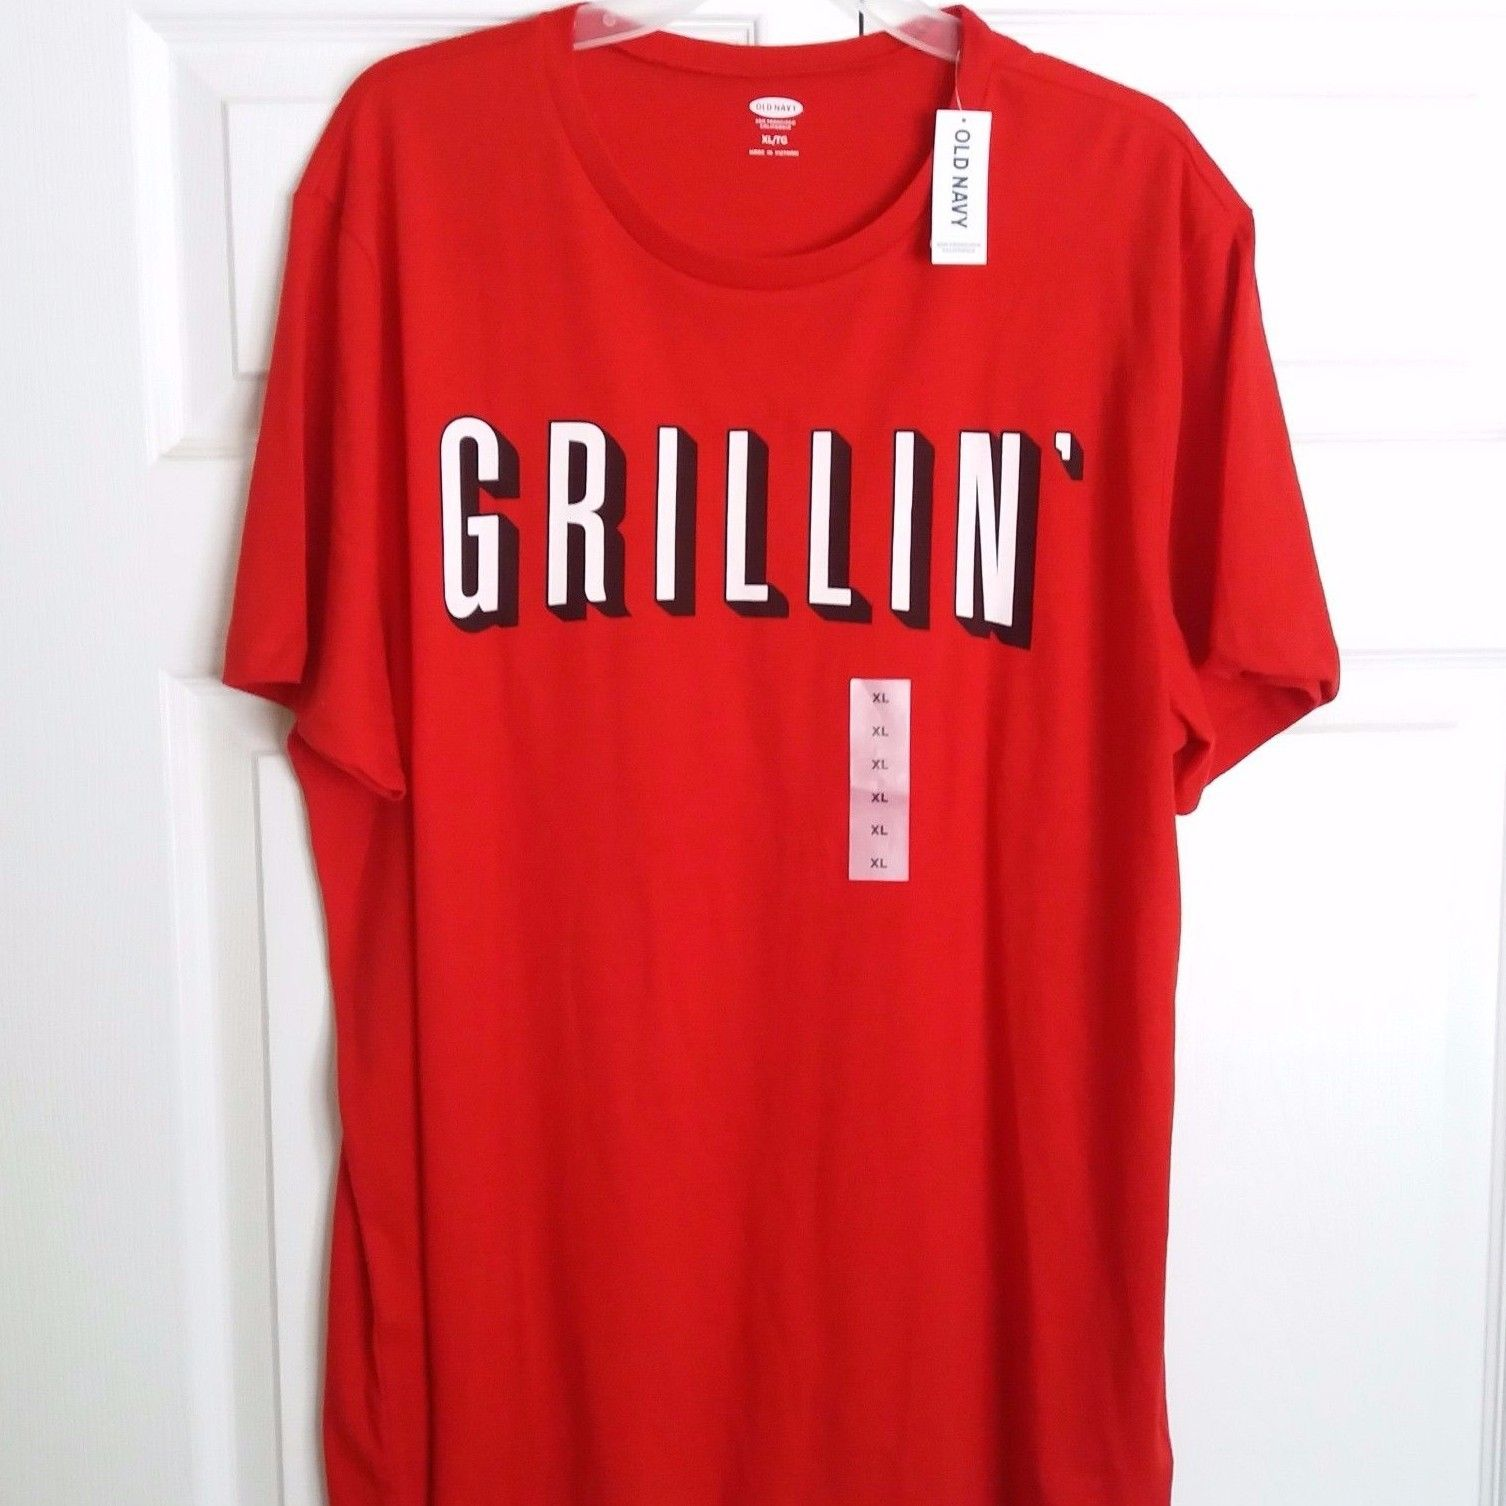 GRILLIN T-Shirt Summer BBQ Tailgate Grilling Barbecue Red Size XL Mens X-Large